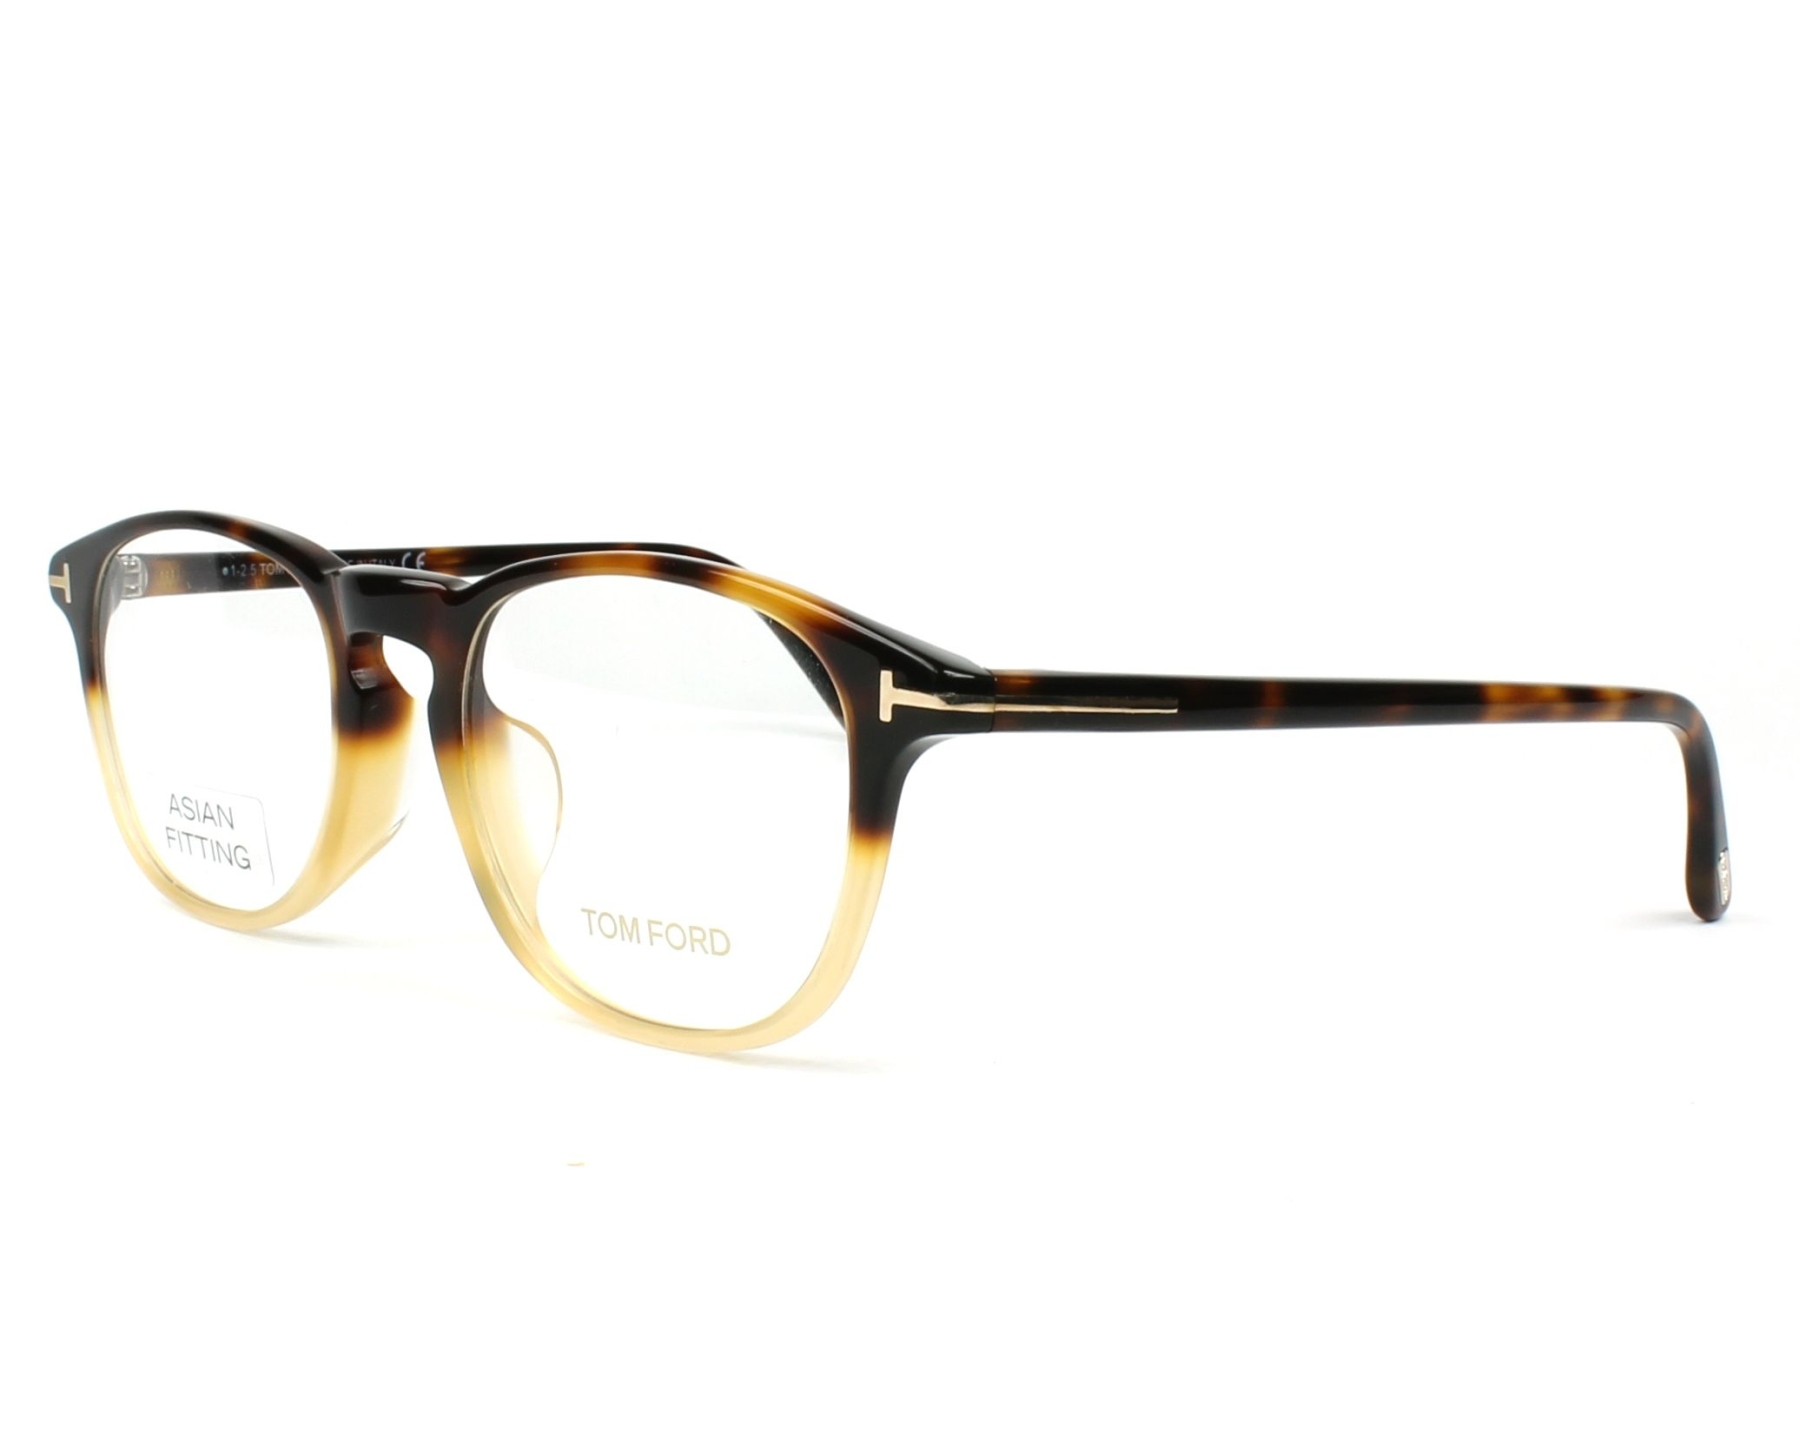 fdf8387acb6 Tom Ford - Buy Tom Ford eyeglasses online at low prices